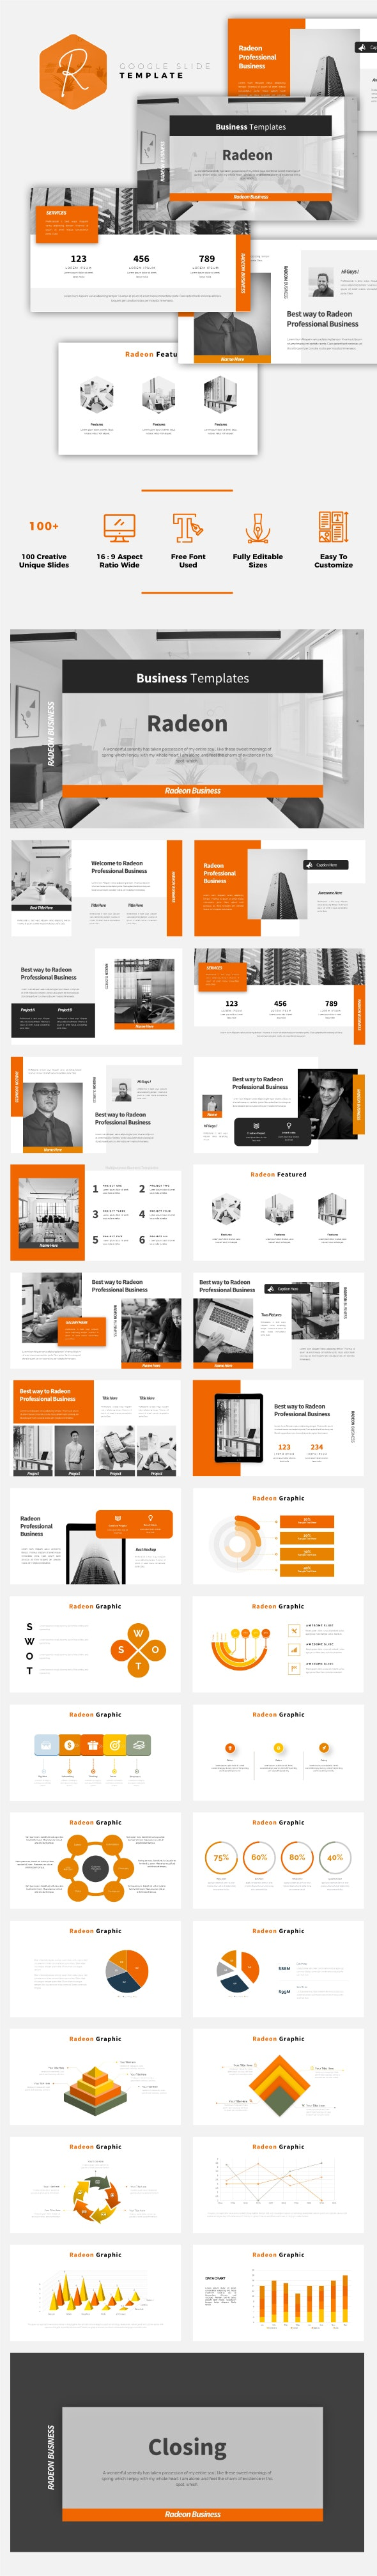 Radeon - Business Google Slides Template - Google Slides Presentation Templates